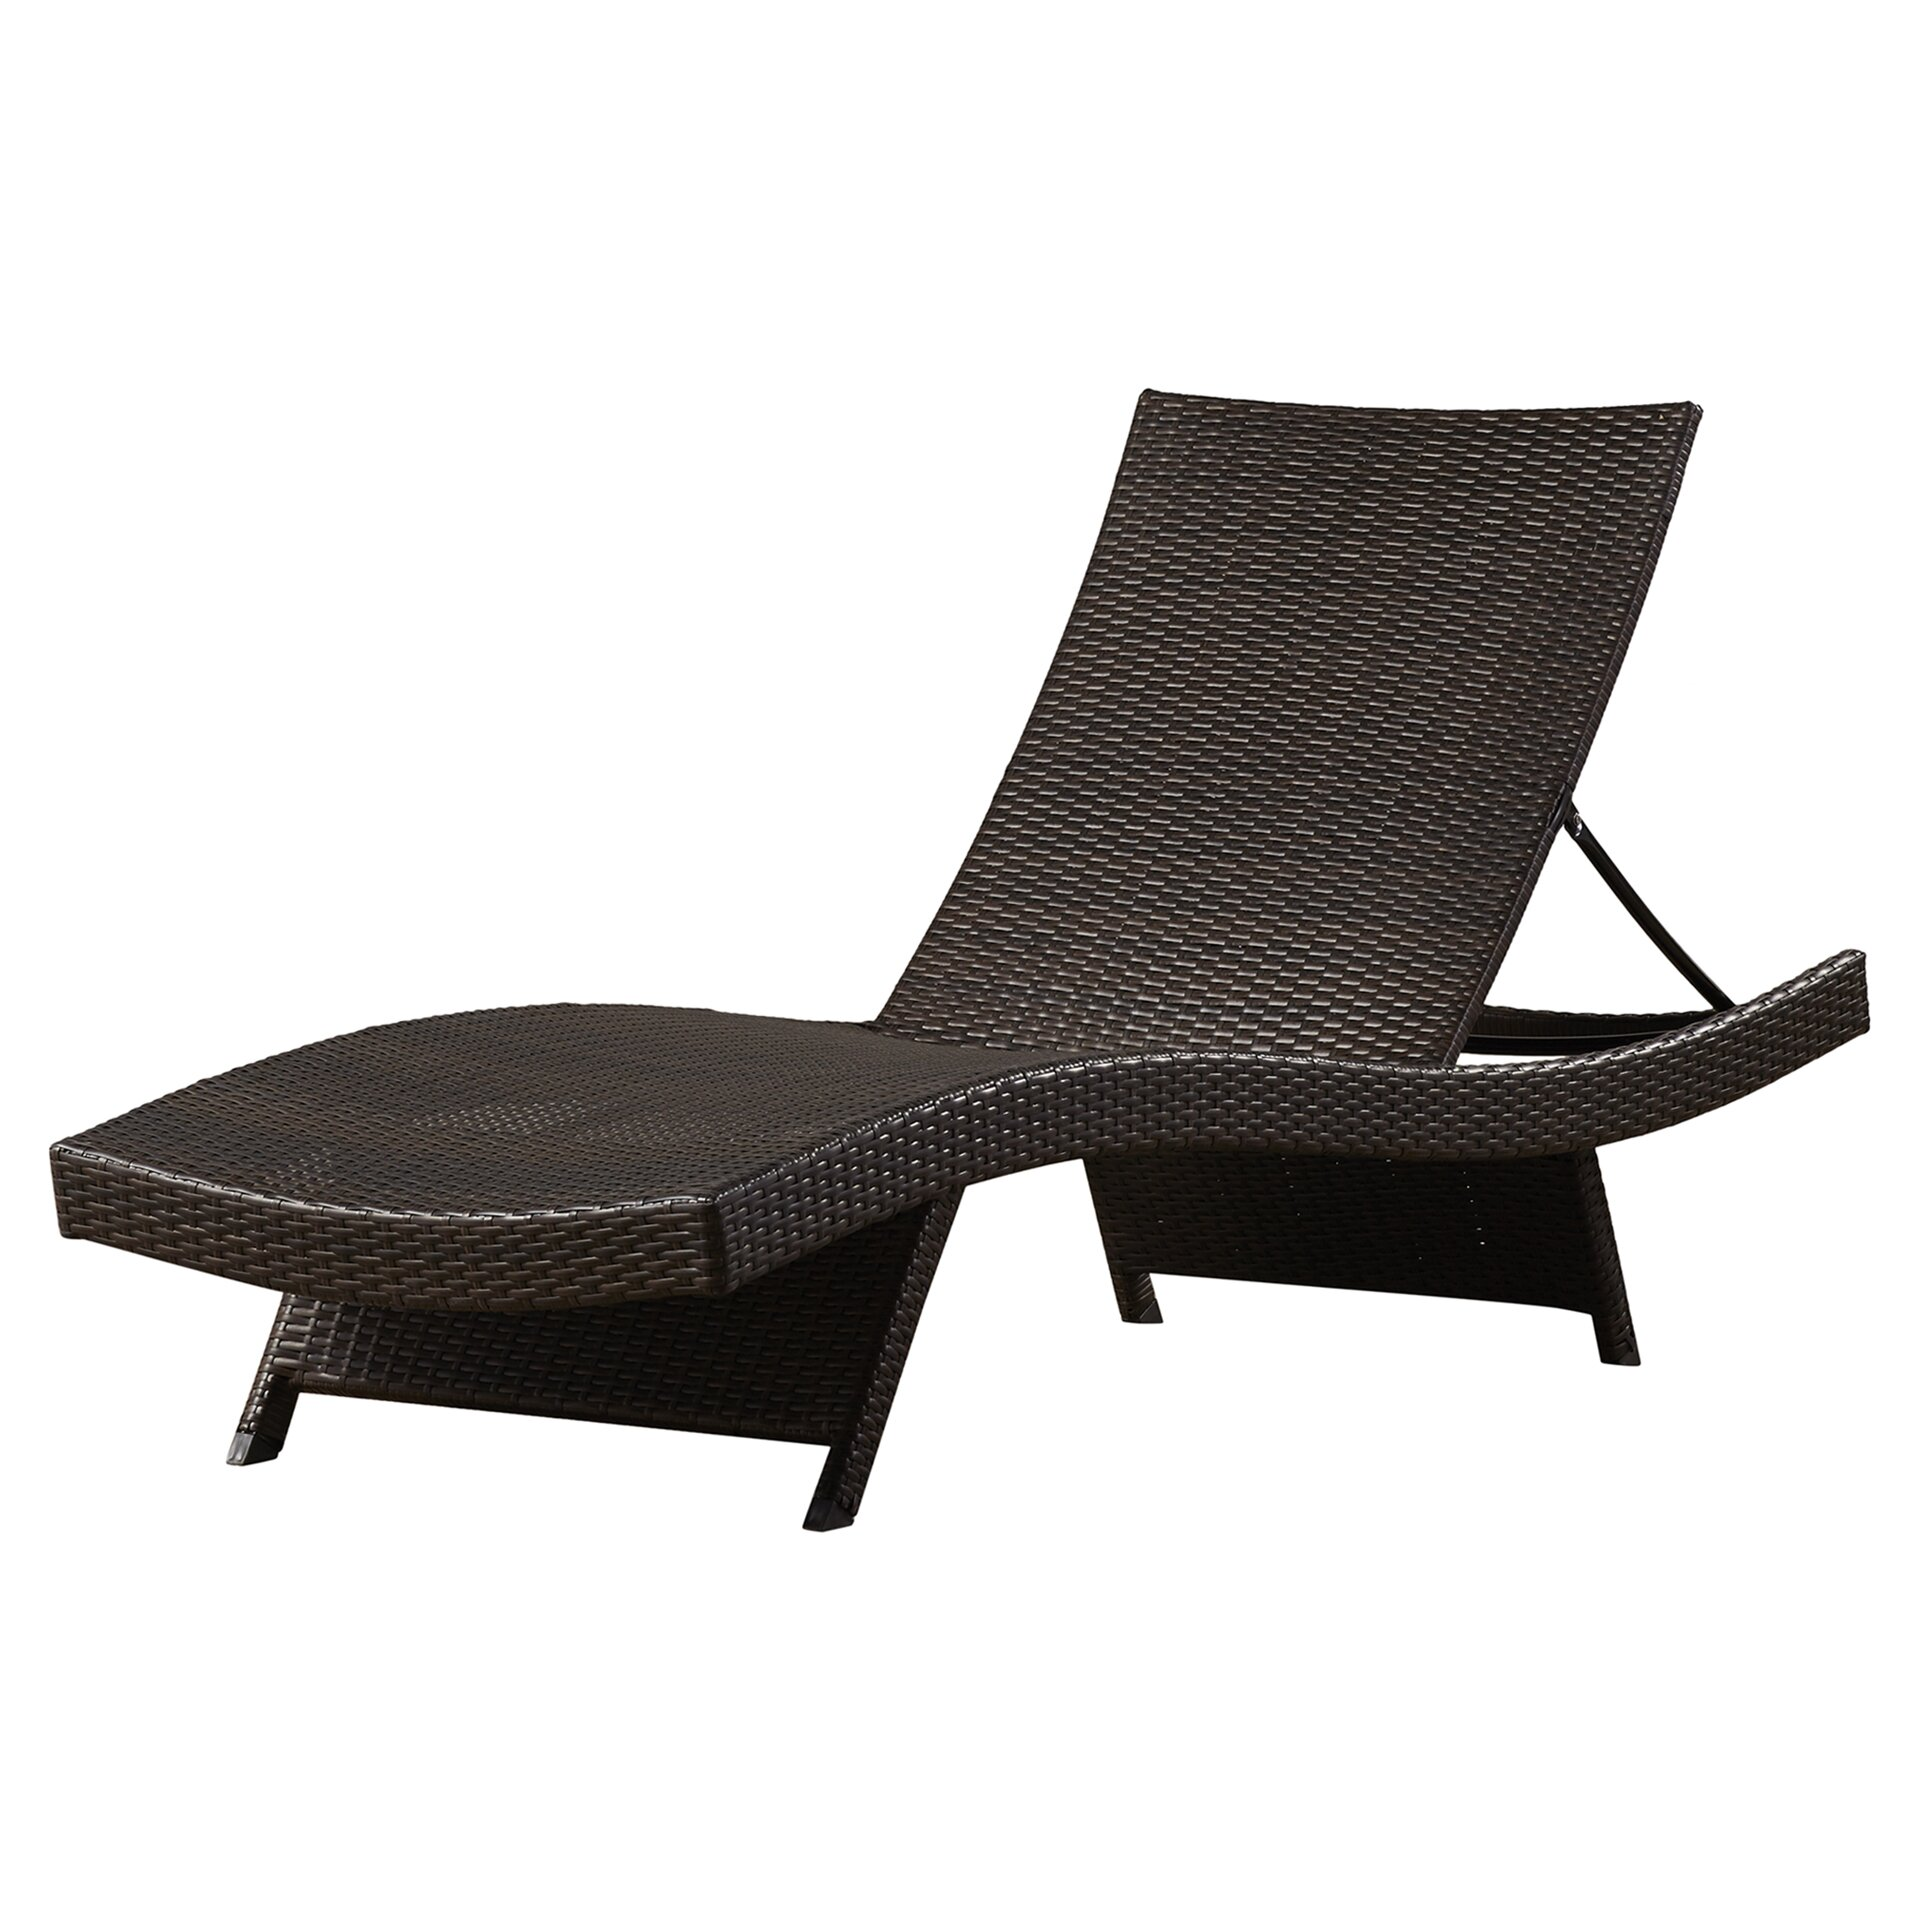 Brayden studio gadbois adjustable chaise lounge reviews for Buy chaise lounge